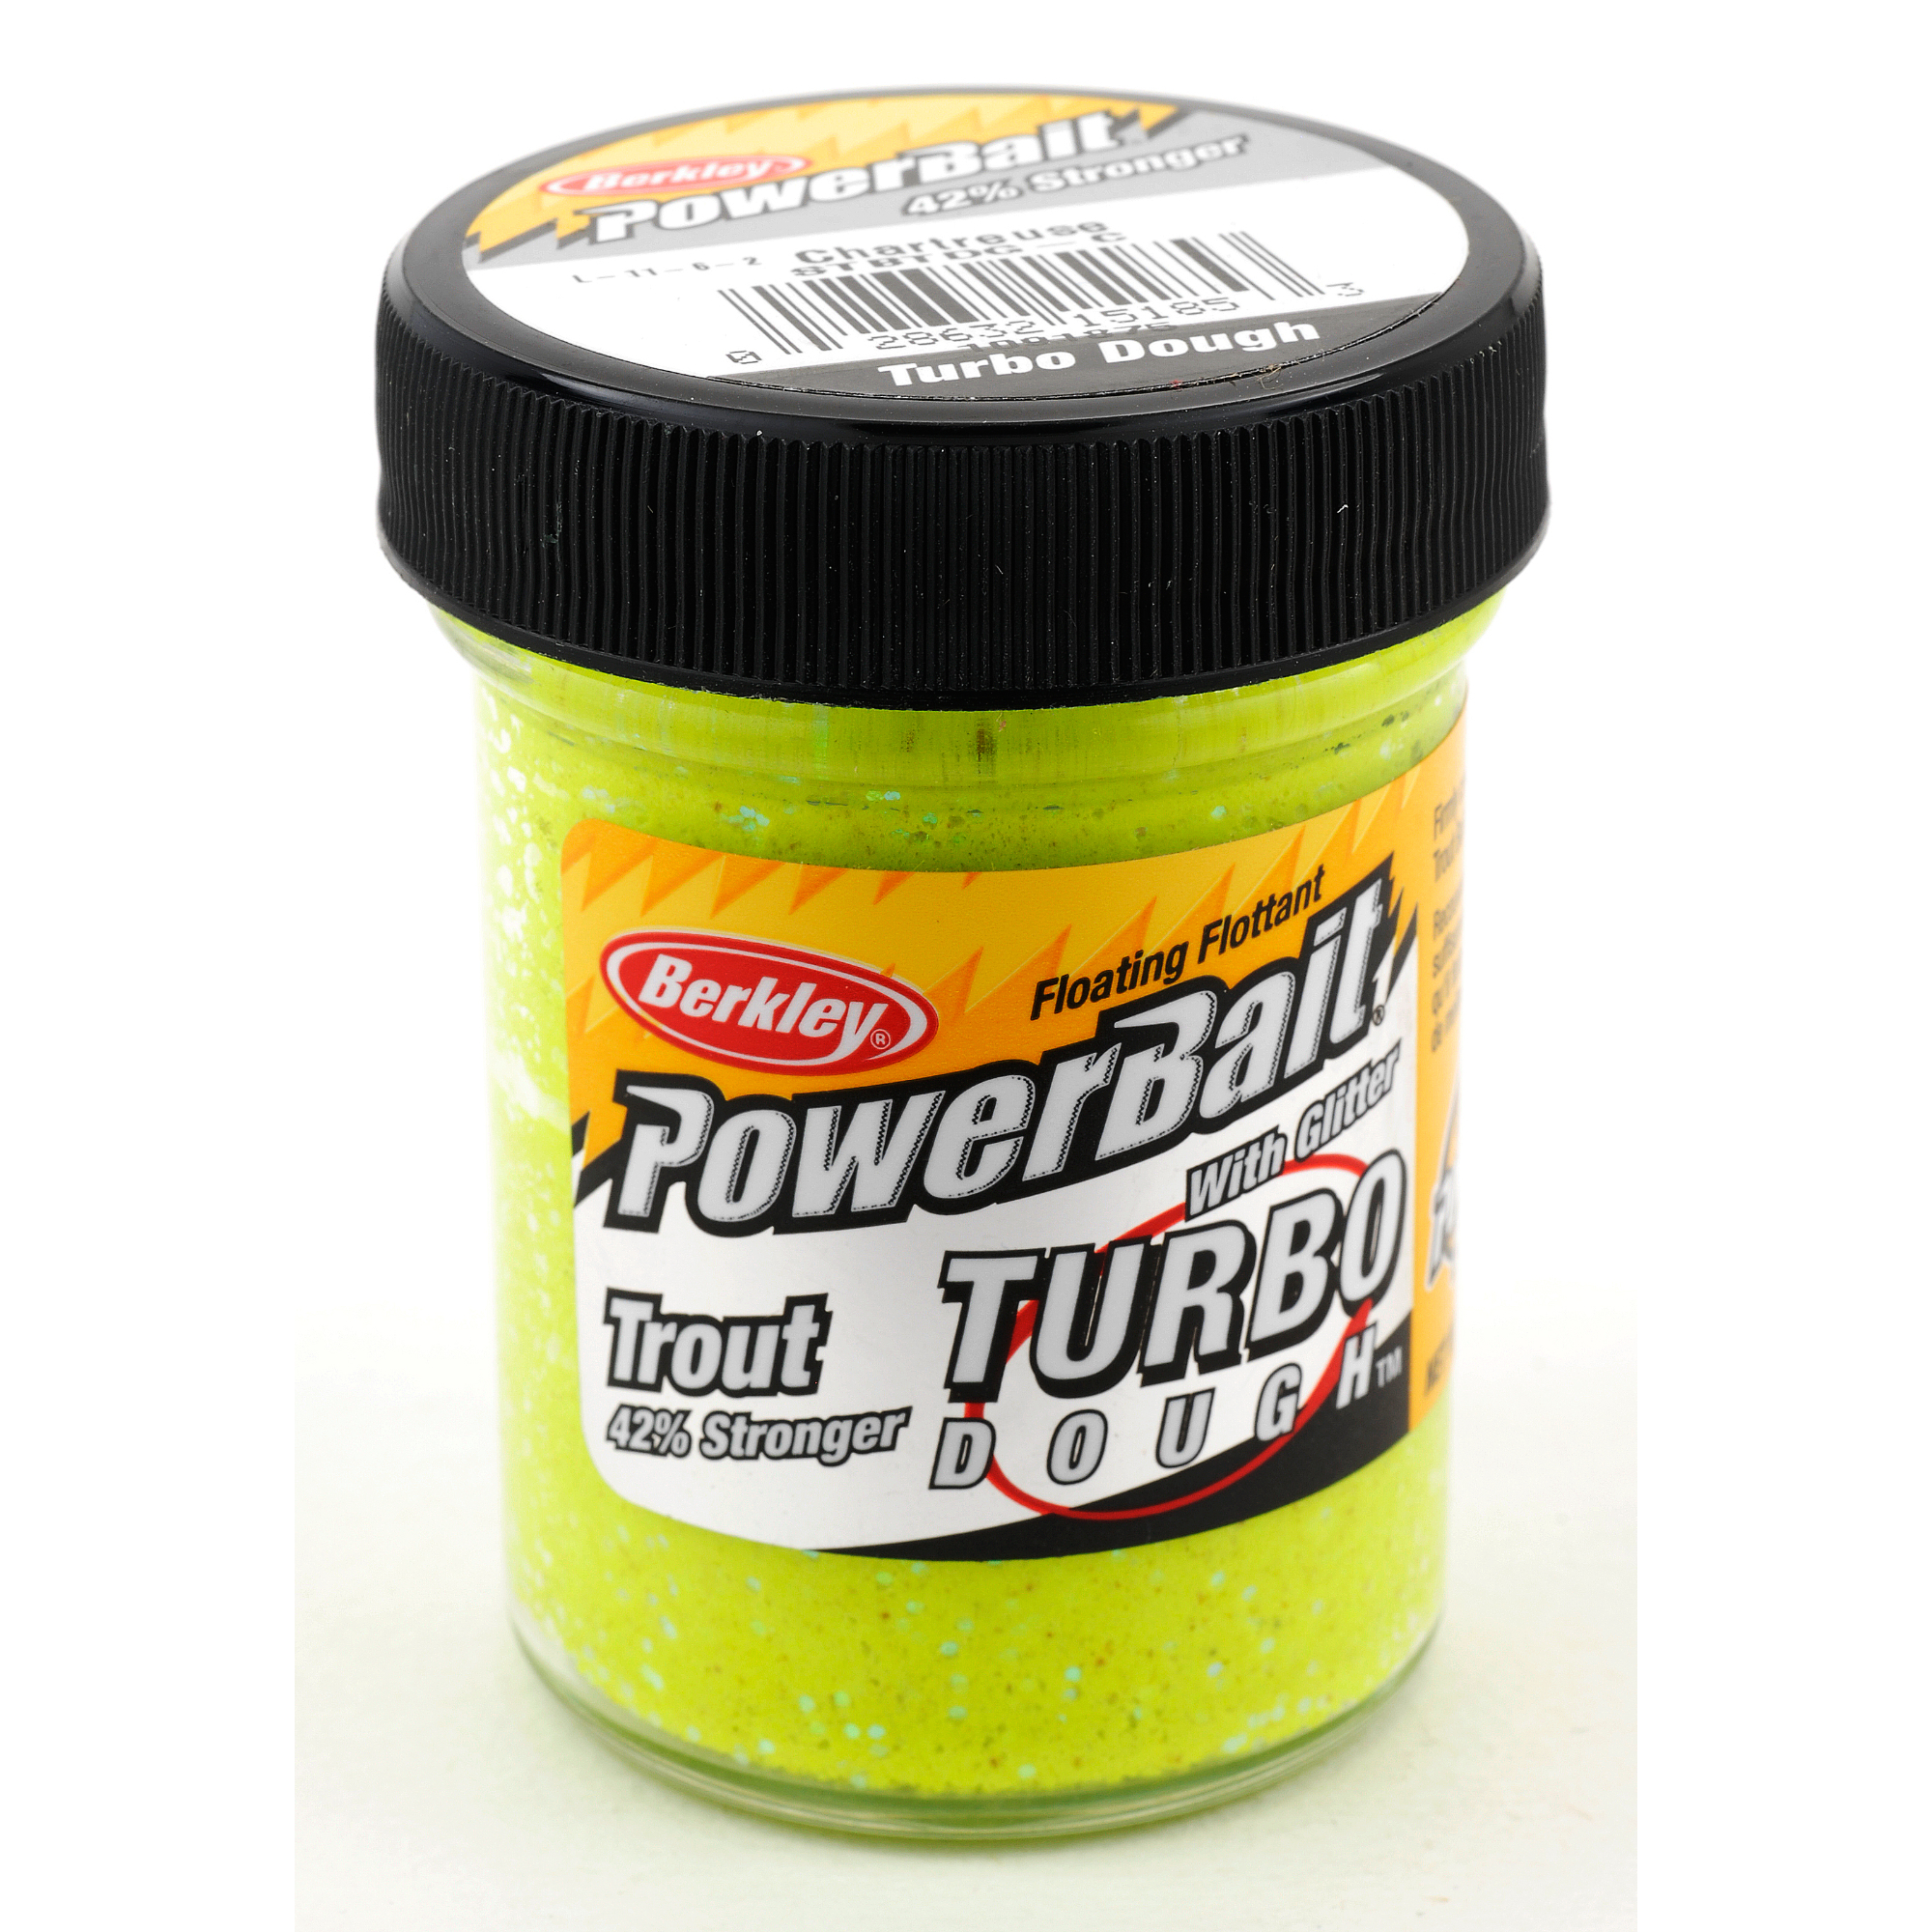 Powerbait glitter turbo dough ebay for Trout fishing with powerbait